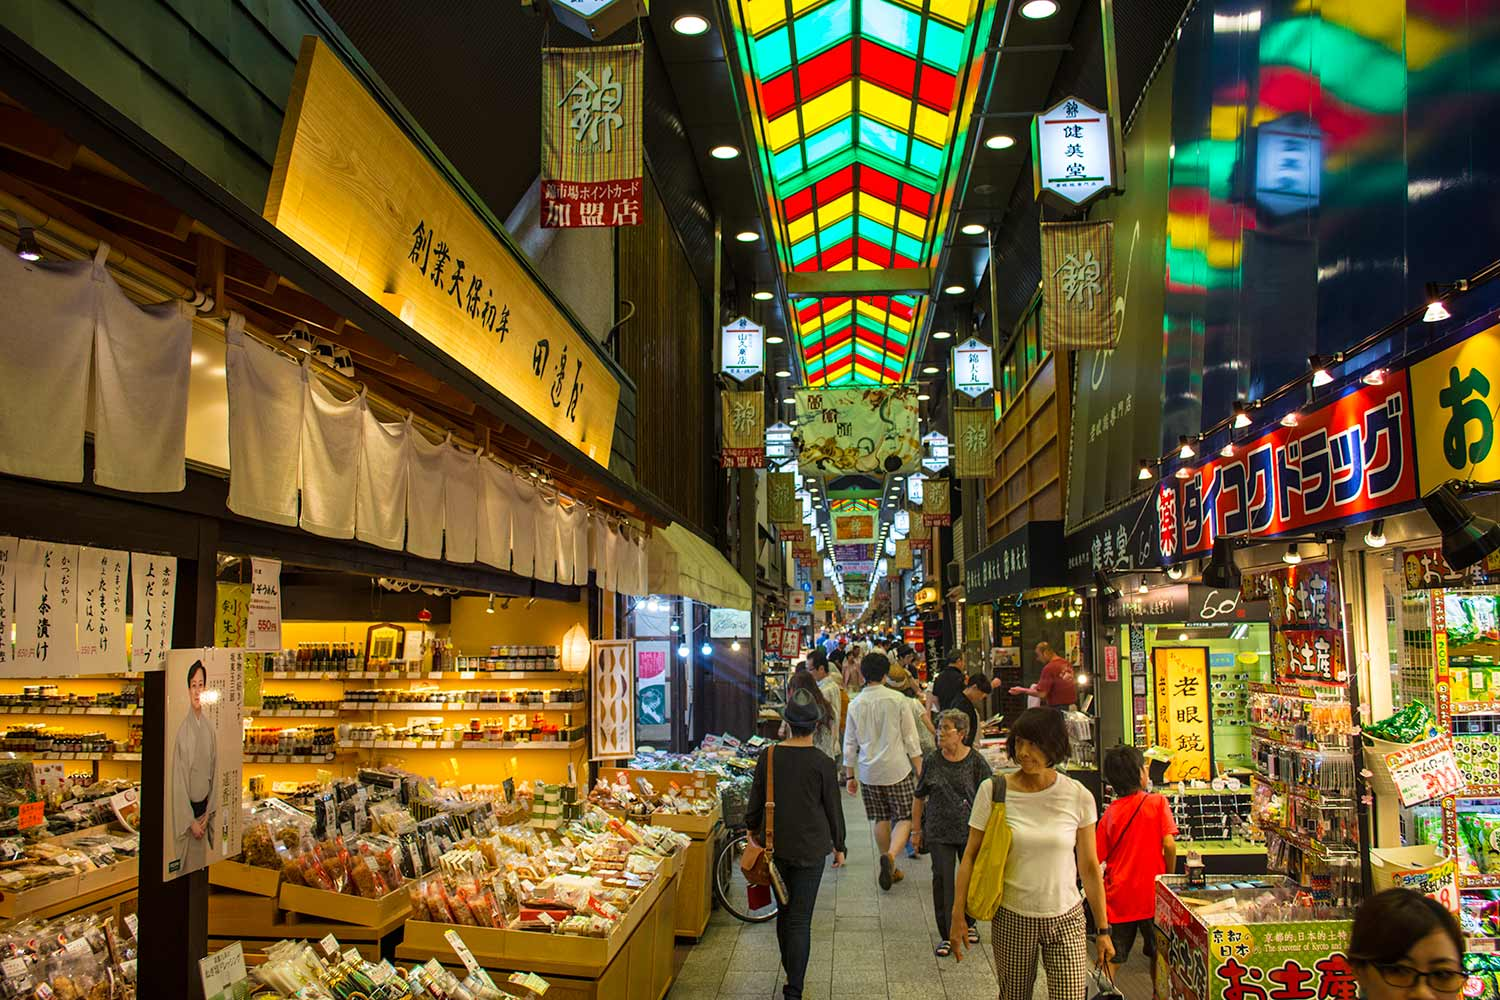 Kyoto's Nishiki market | Sakura Sakura - a journey through Japan